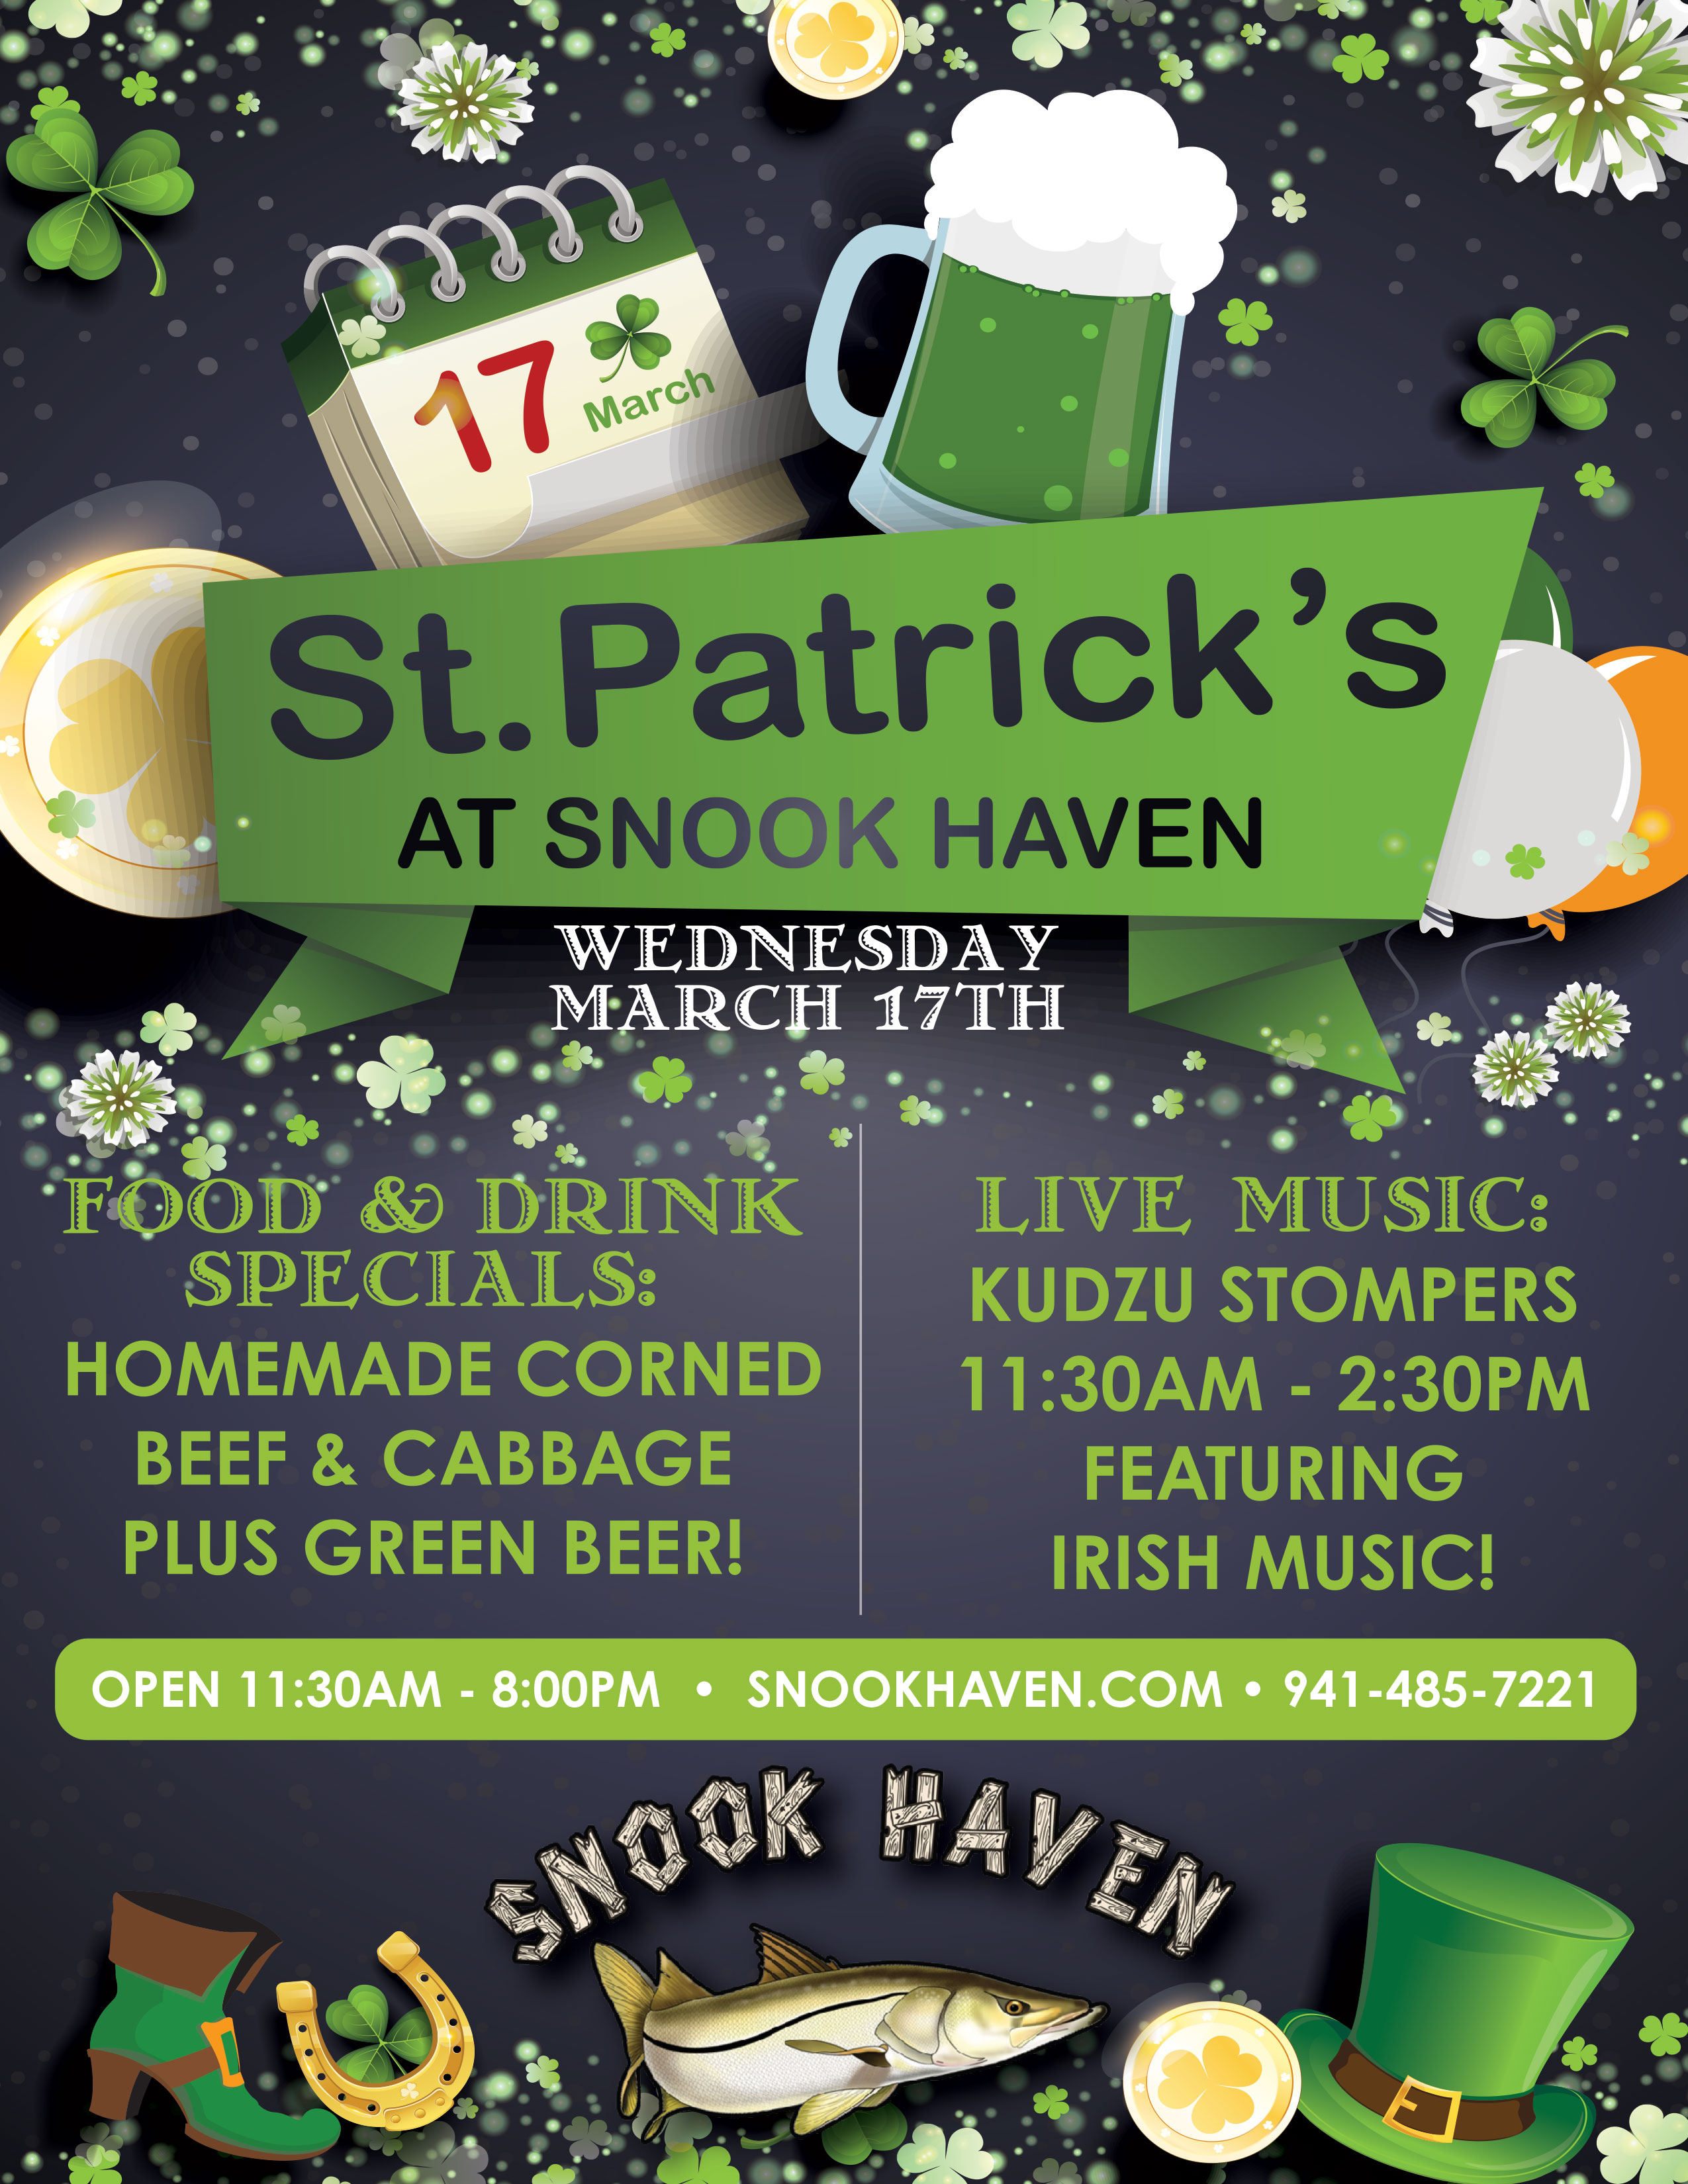 St. Patrick's Day at Snook Haven